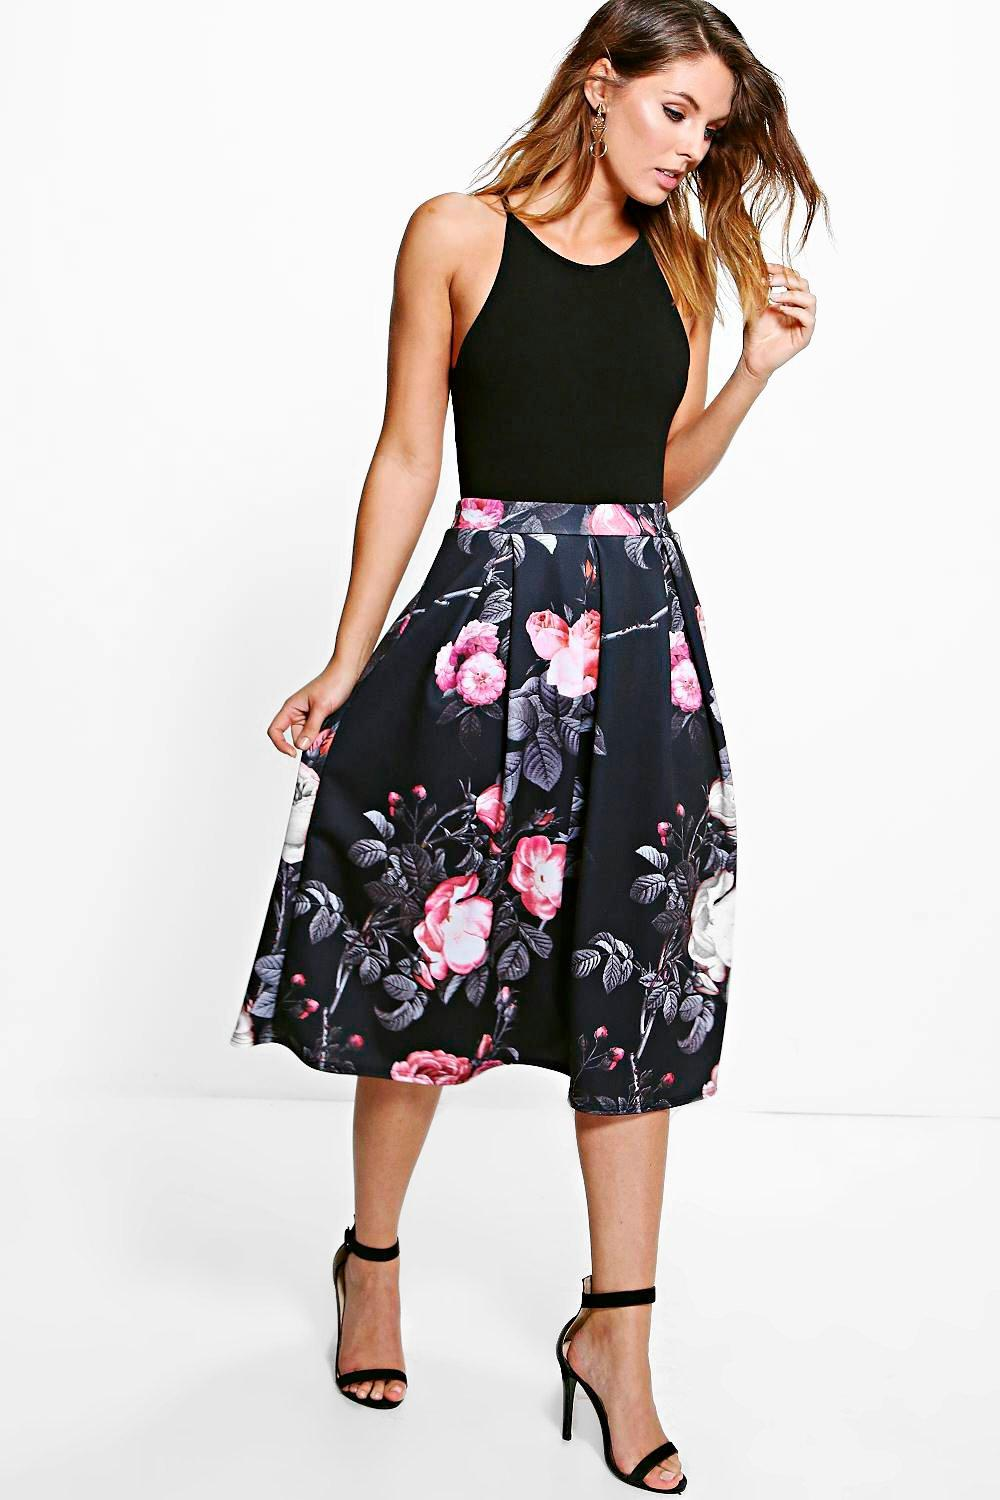 Suki Dark Floral Digital Print Full Midi Skirt